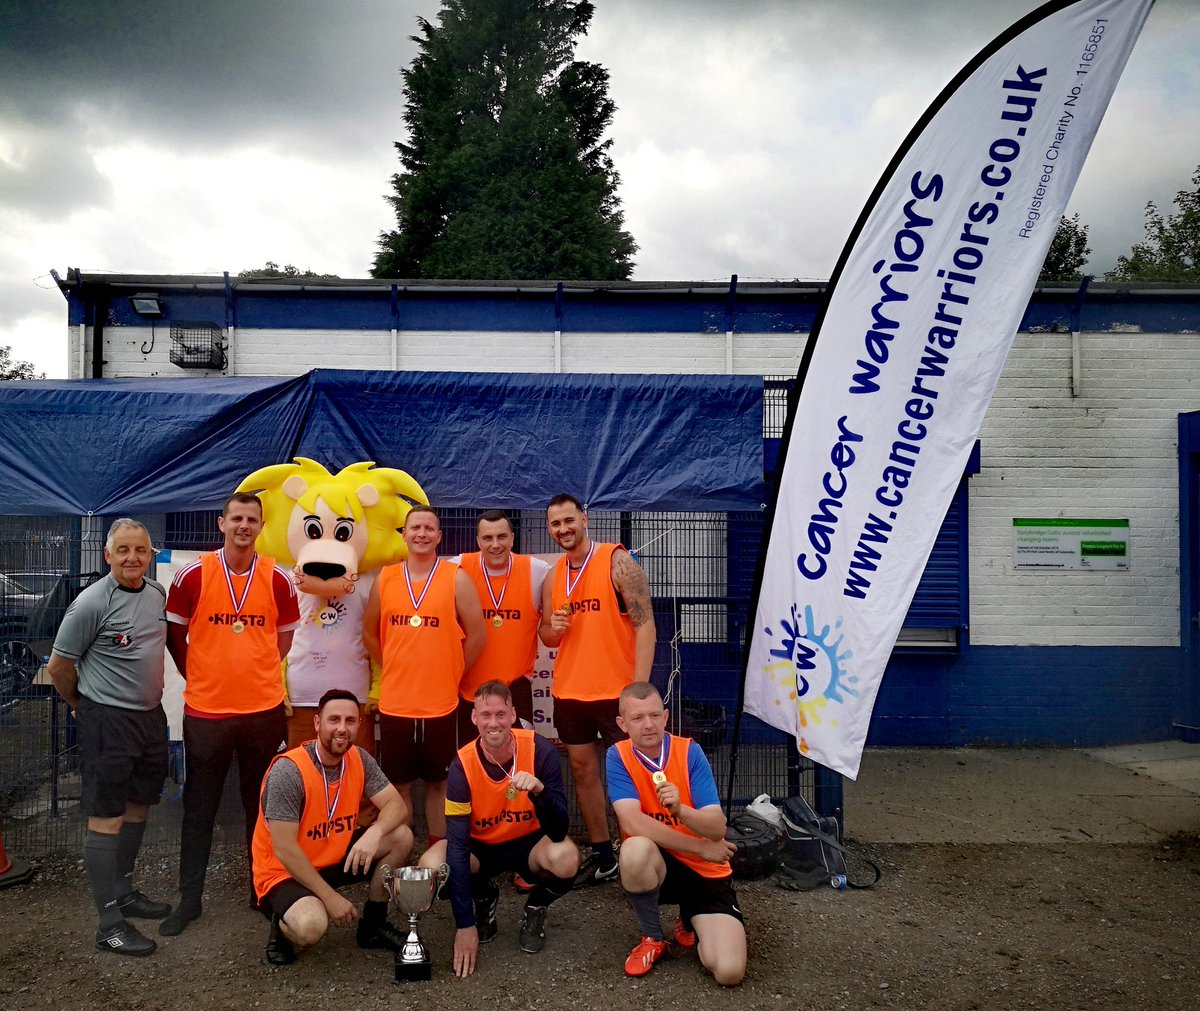 Had such a great day at @CelticJnrs  #walkingfootball tournament sadly we didn't win well done #MightySpartans who won thanks to everyone involved in such a great event raising vital funds for us at Cancer Warriors super day<br>http://pic.twitter.com/n4iuioJHve